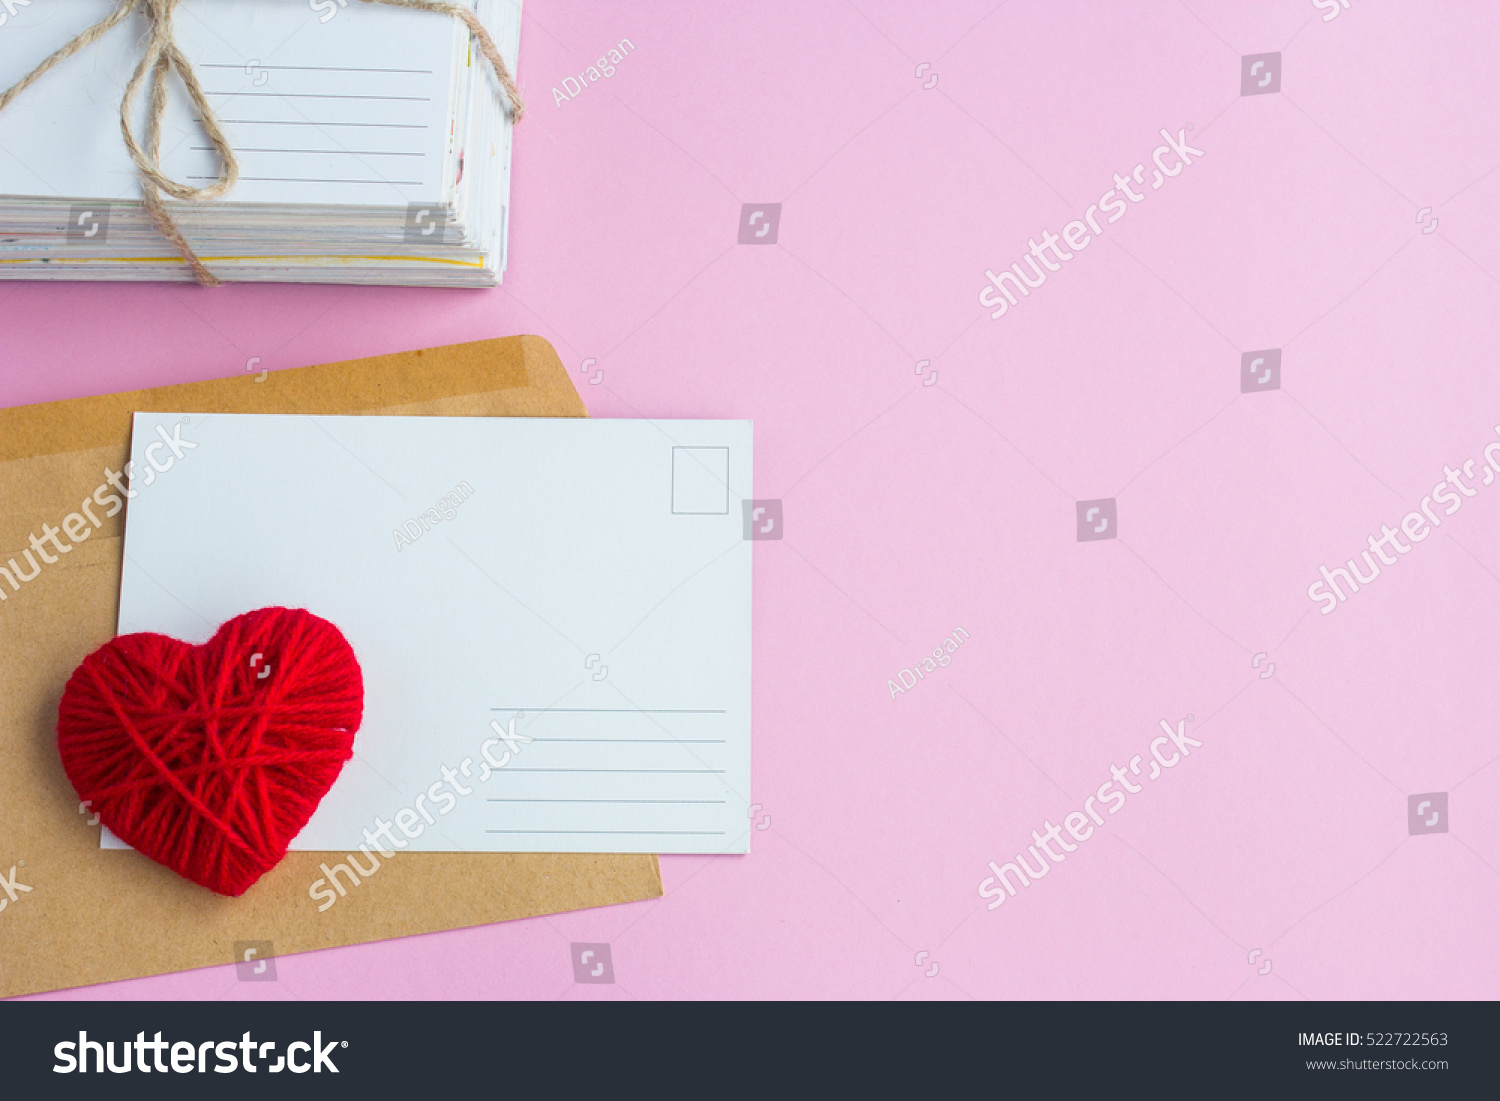 Royalty Free Blank White Post Cards Empty Postcard 522722563